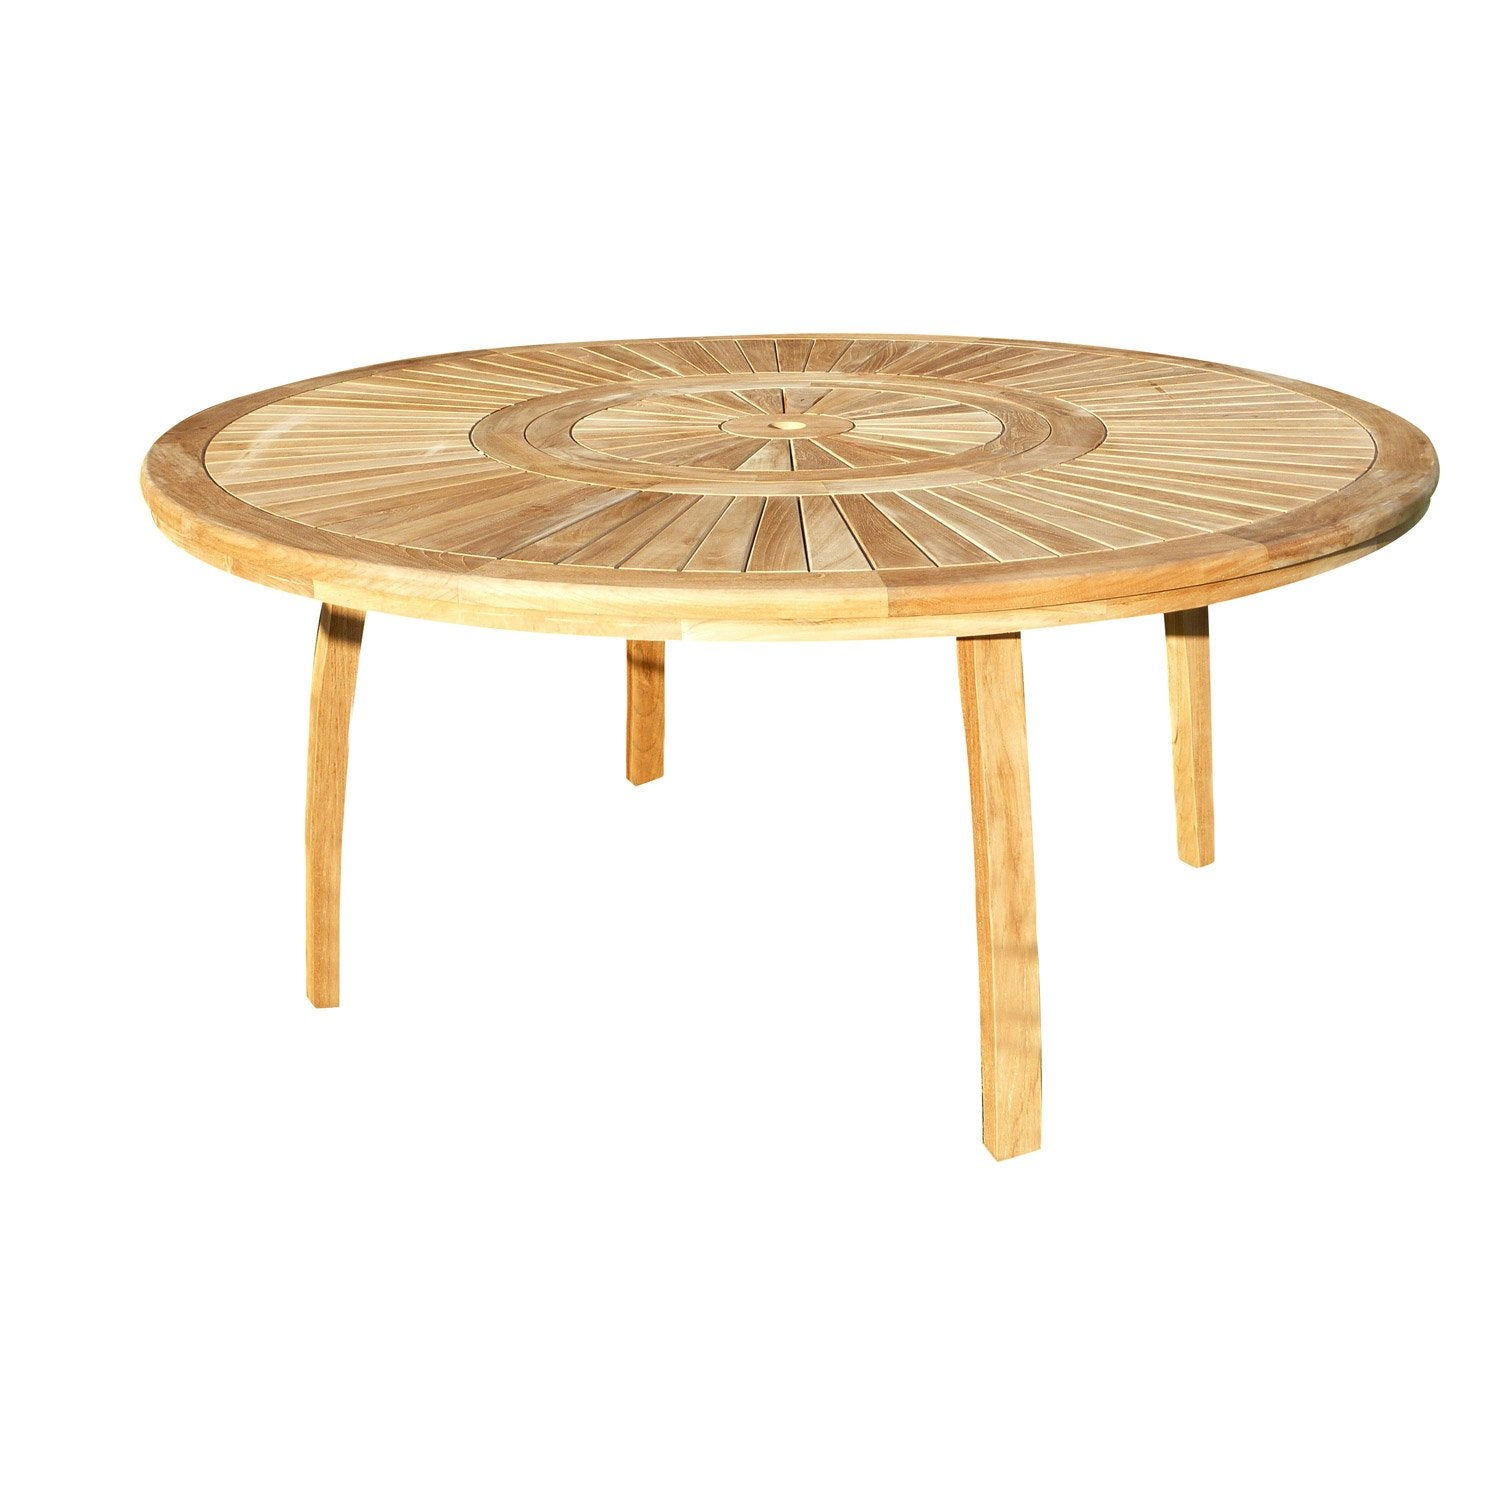 Table de jardin orion ronde naturel 8 personnes leroy merlin - Table 8 personnes ikea ...